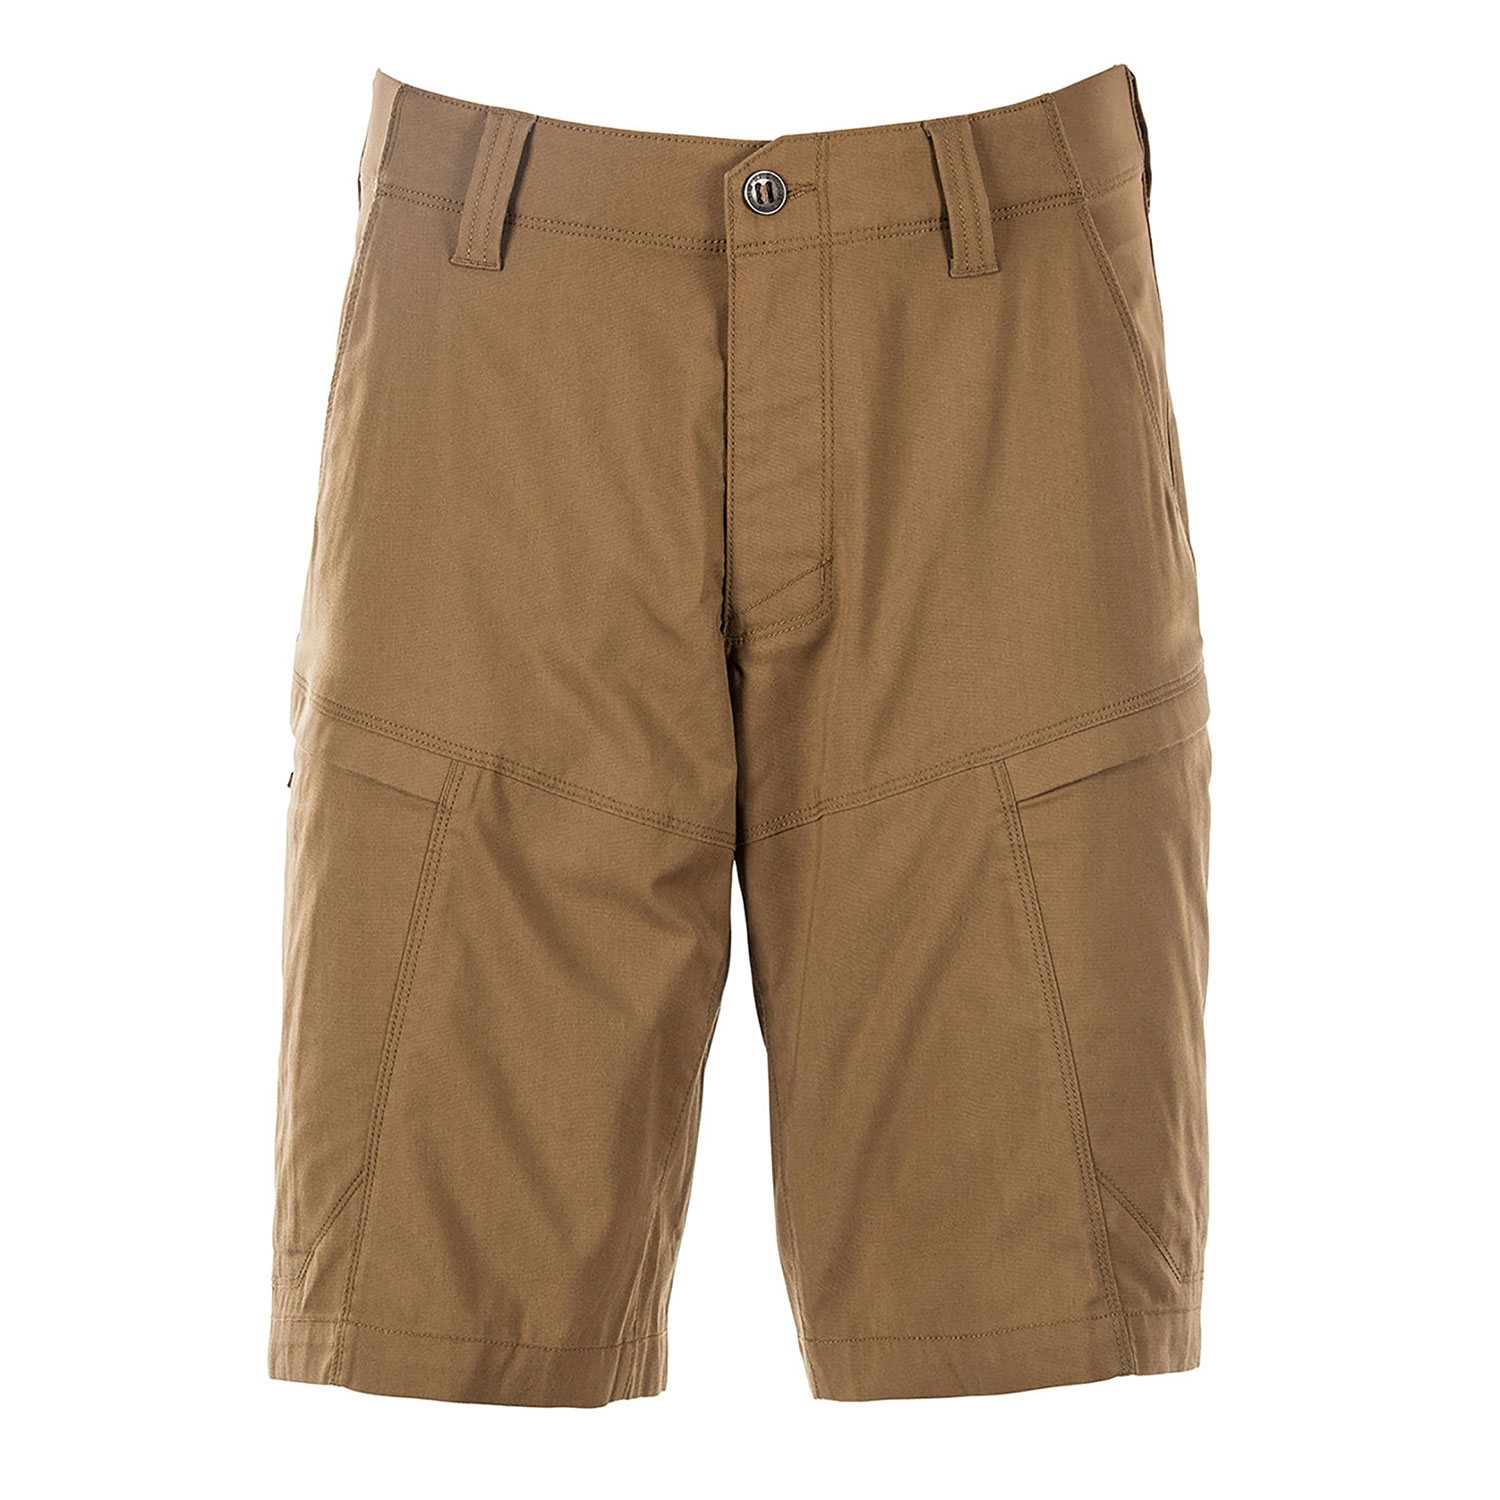 5.11 Tactical Apex Shorts